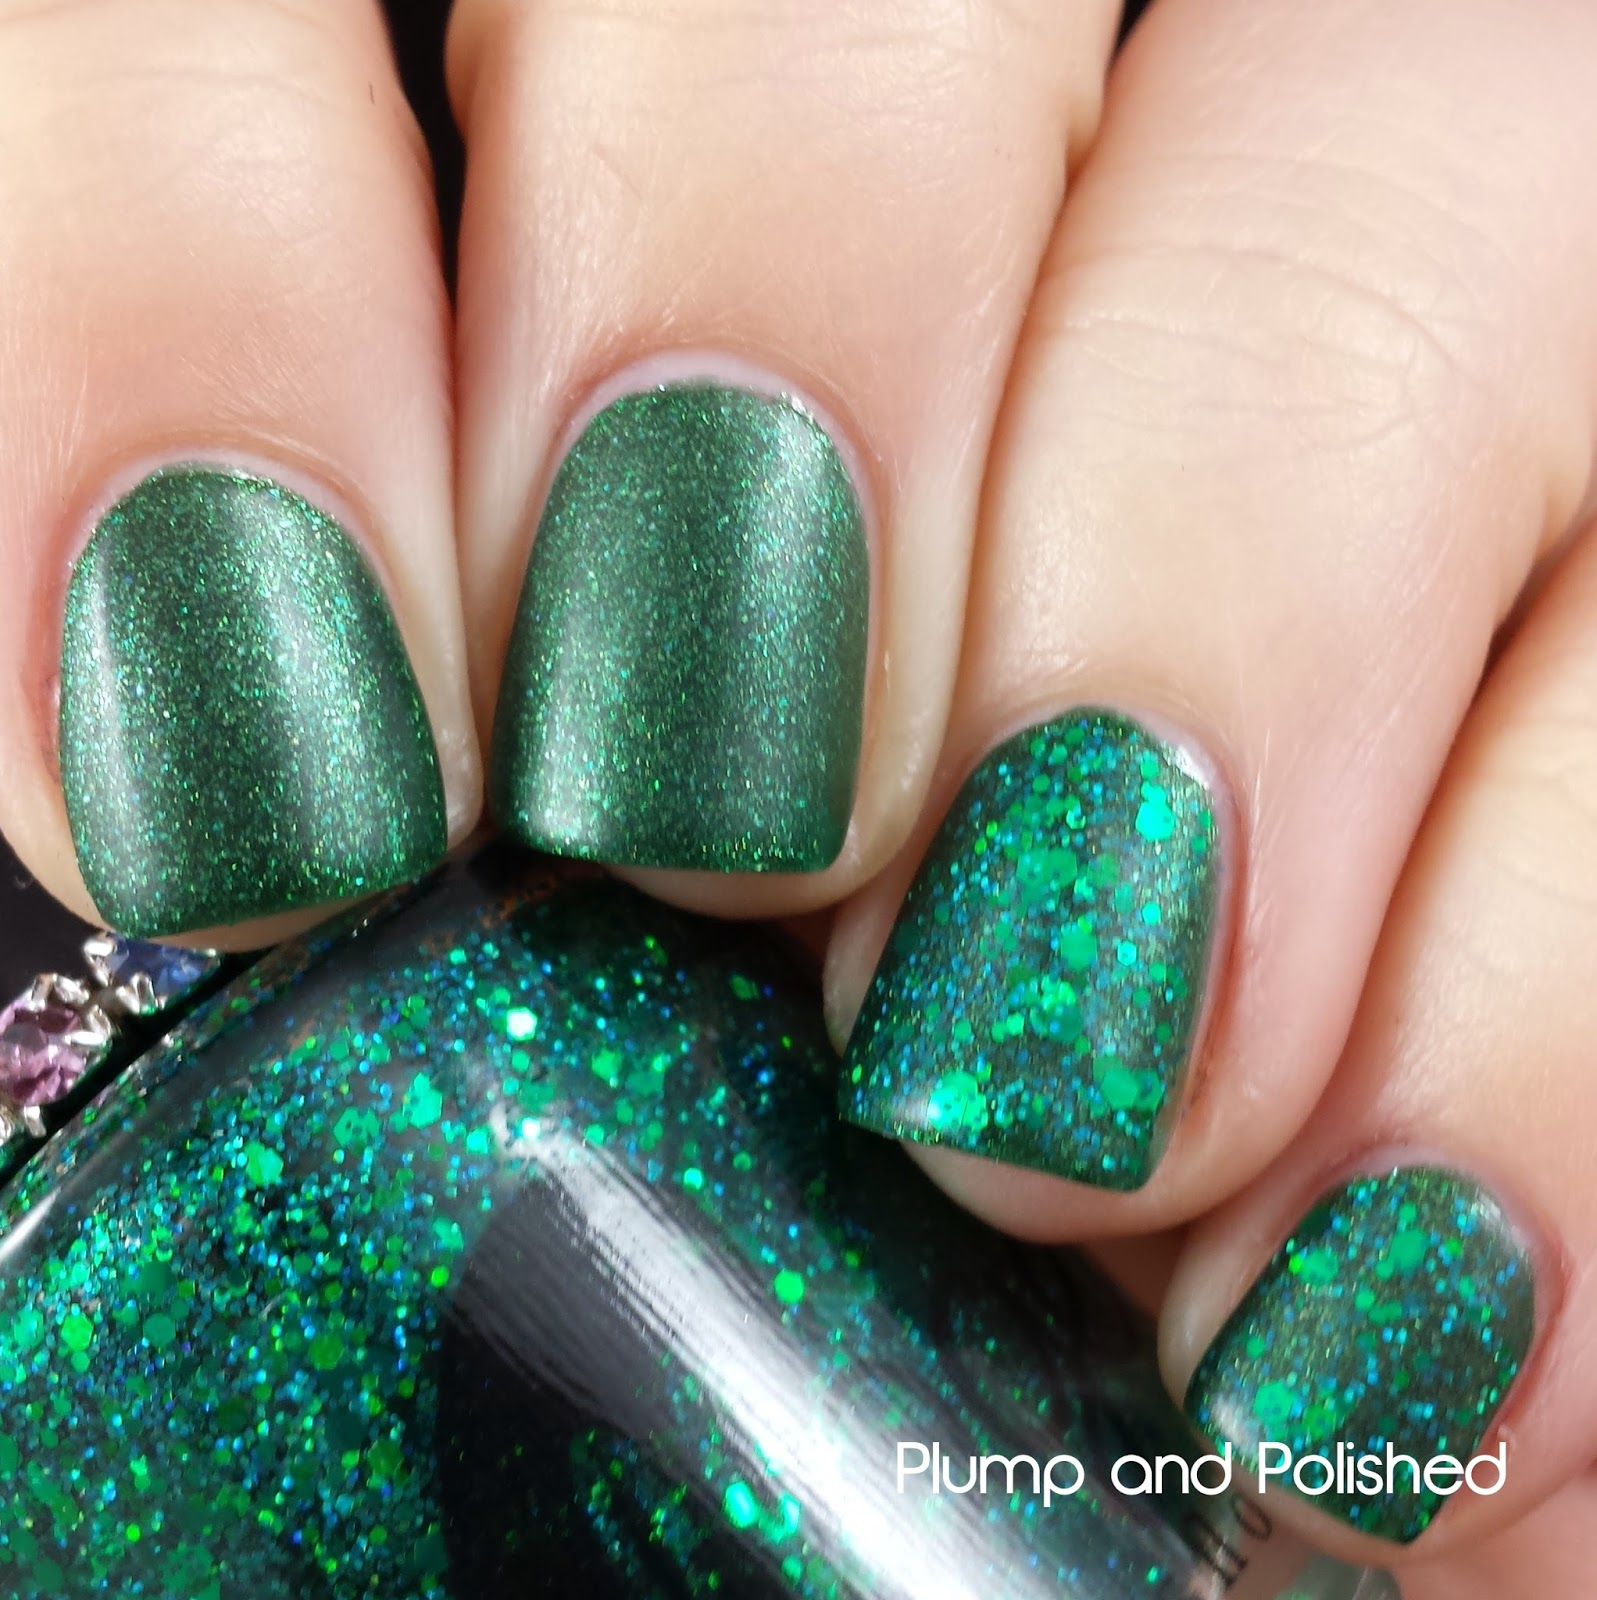 ellagee - Sparkling Gemstones: Glimmering Emerald and Crushed Emerald